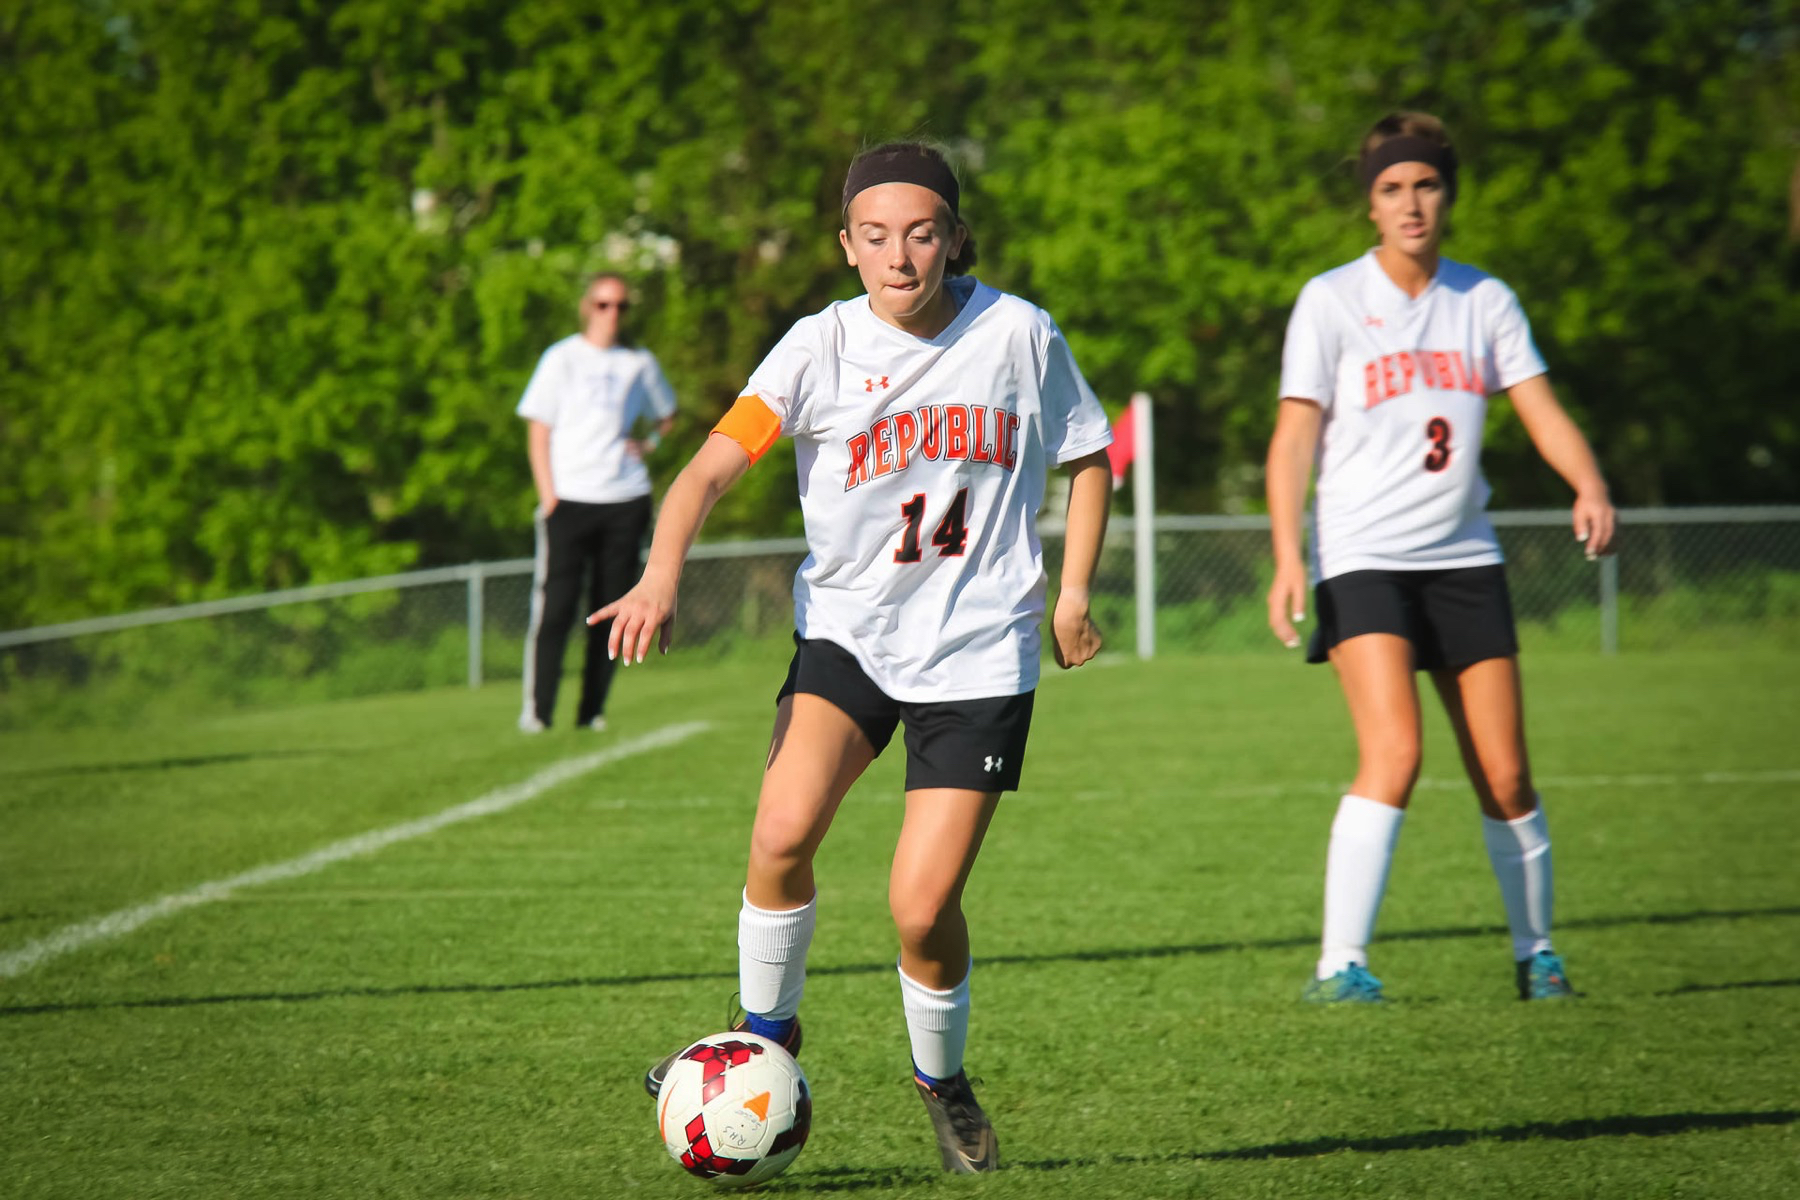 Photos: Varsity Soccer Vs Greenwood